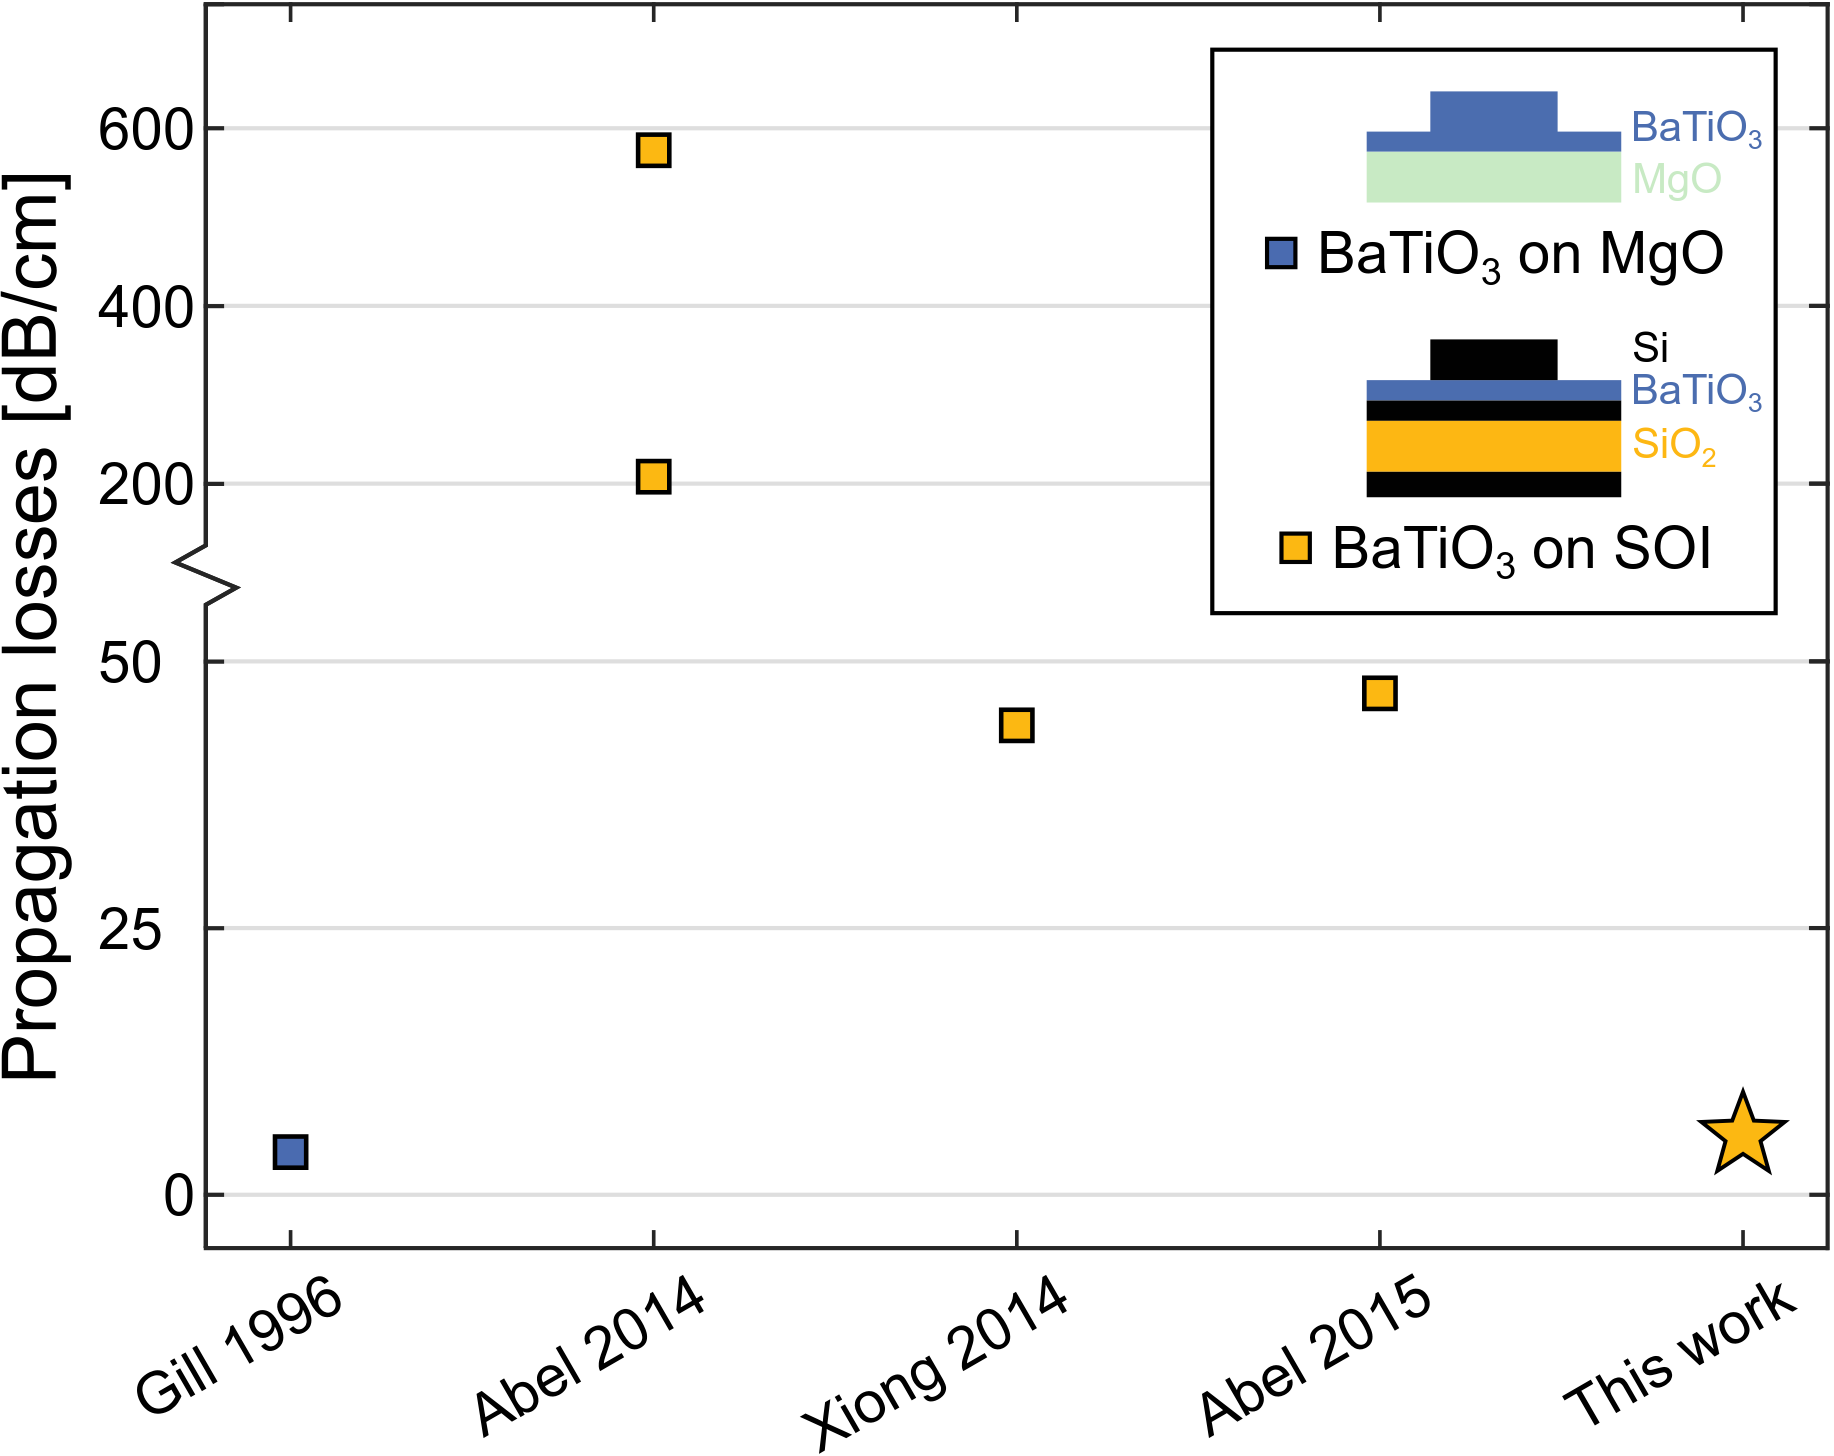 Comparison of previously reported propagation losses in BaTiO3-based waveguides on MgO and Si substrates